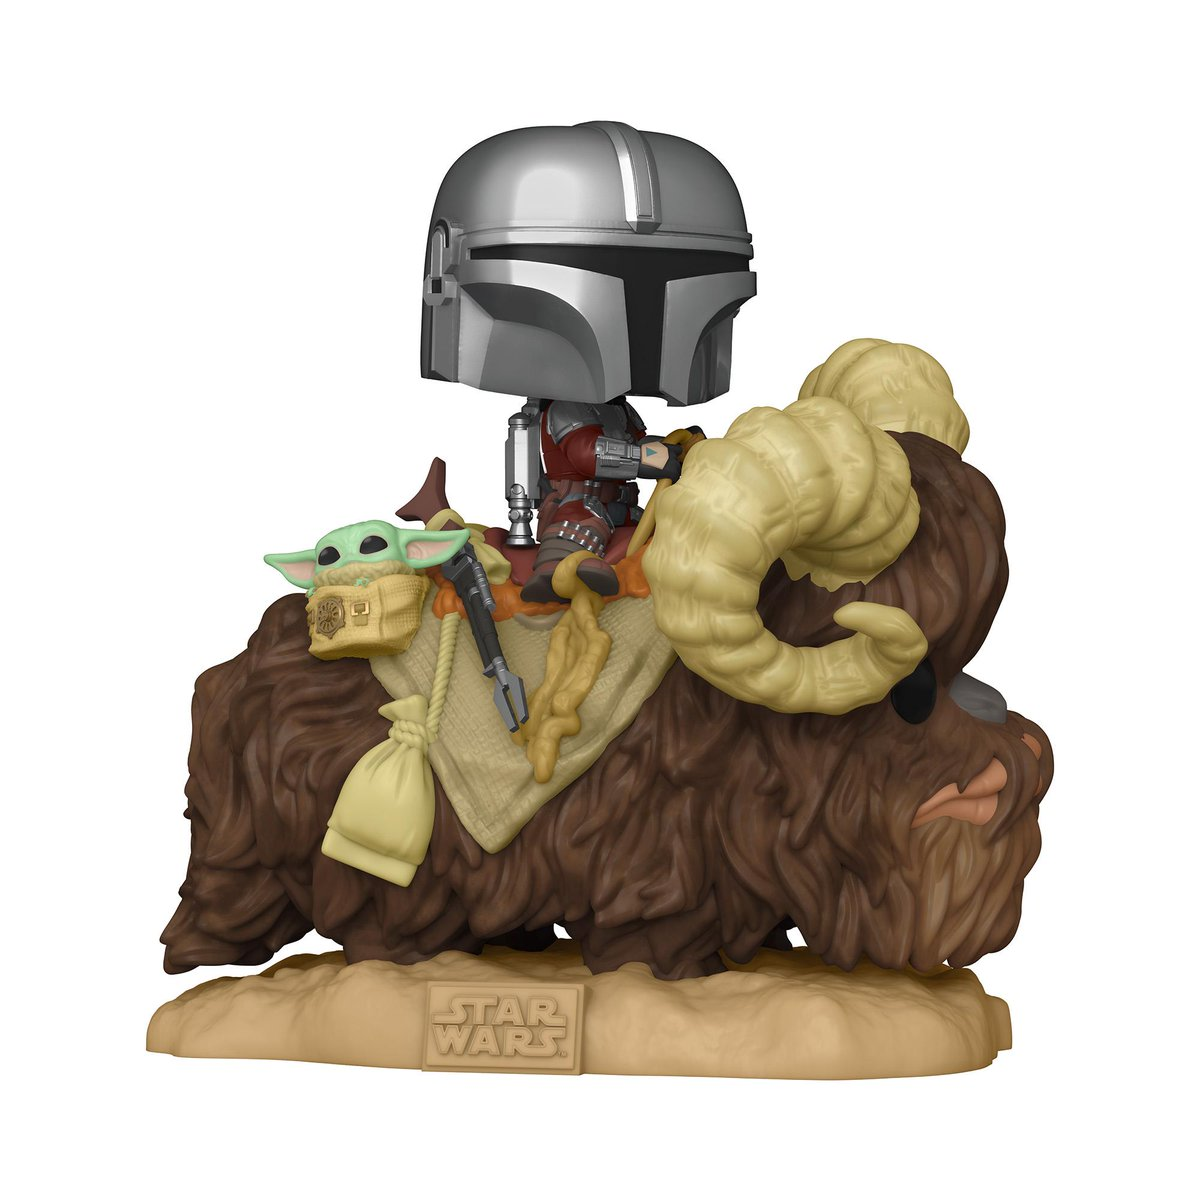 RT & follow @OriginalFunko for the chance to WIN The Mandalorian and the Child on Bantha Pop! Deluxe! #Giveaway #FunkoGiveaway #TheMandalorian #DisneyPlus